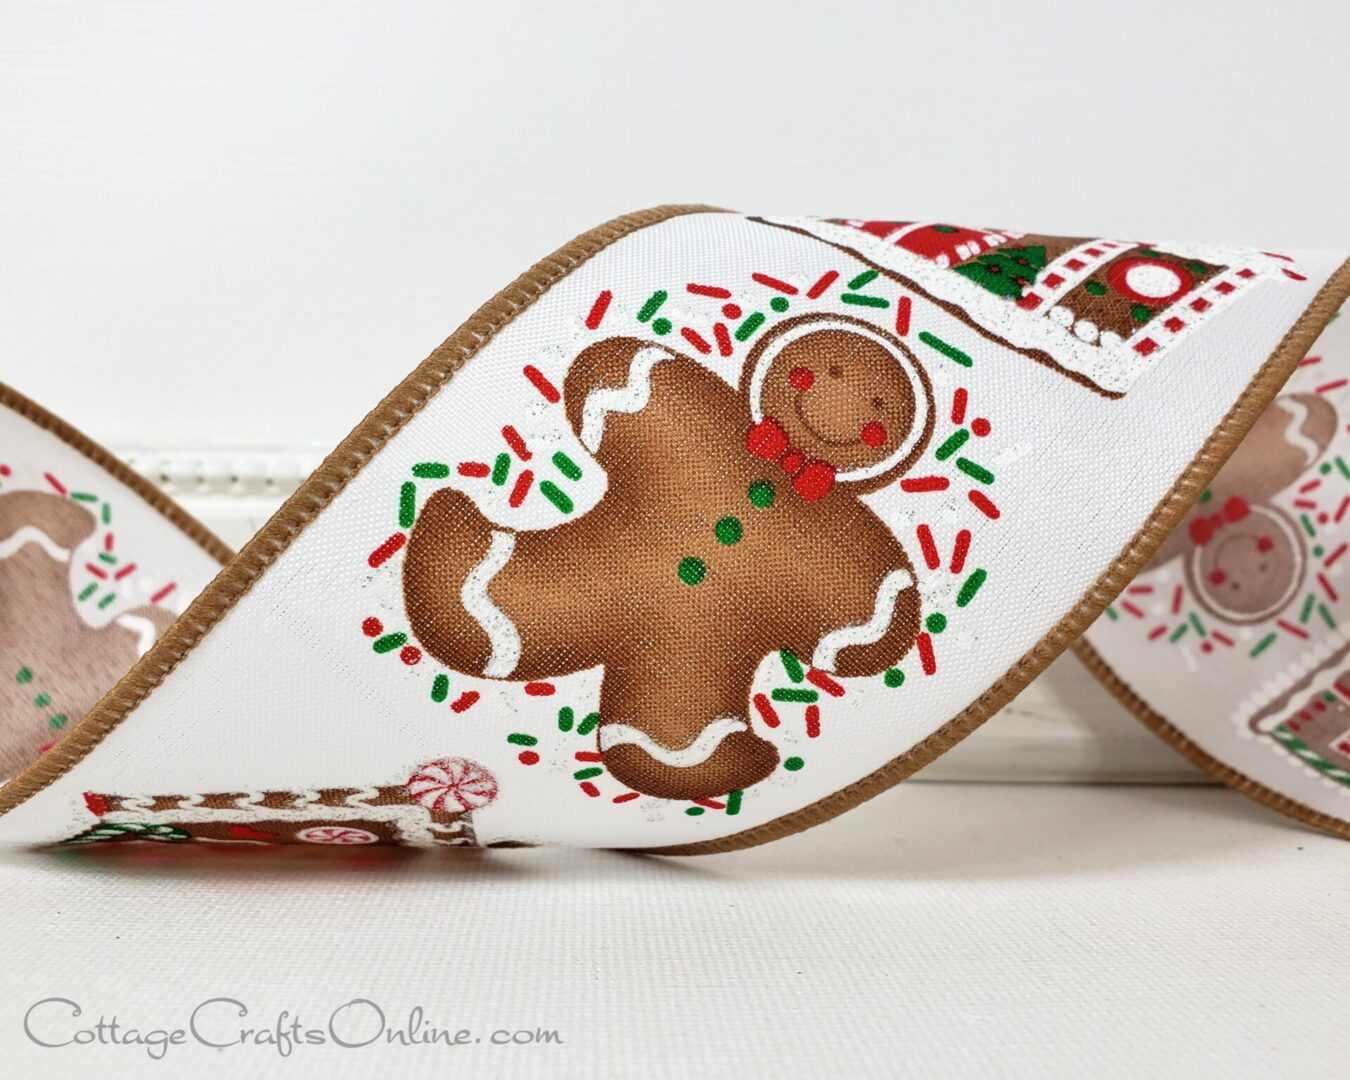 gingerbread house ginger bread man woman person ol-008